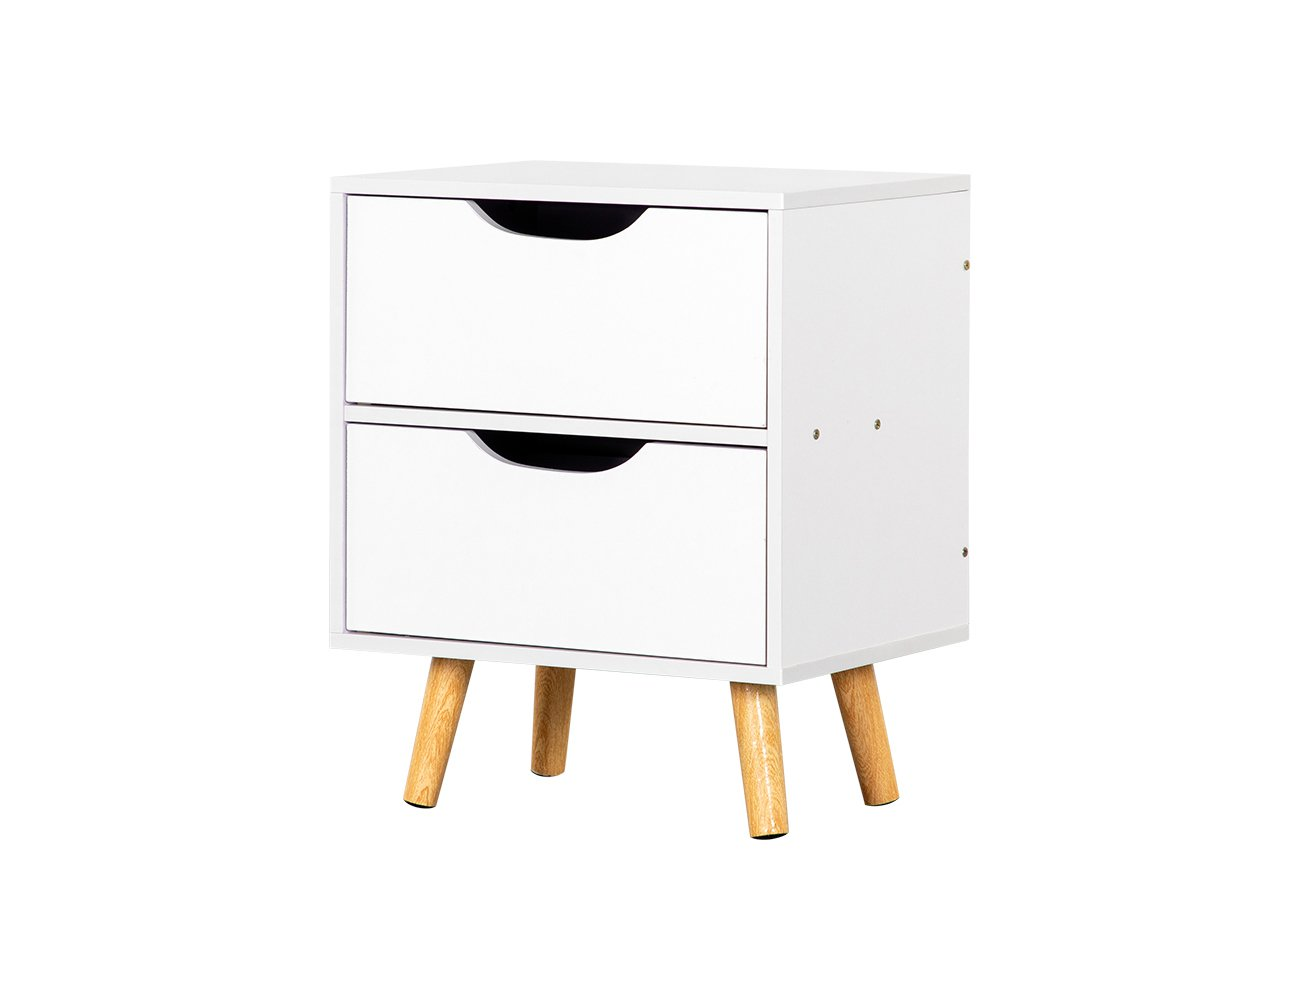 2 Level Bedside Table - White (Fully Assembled)